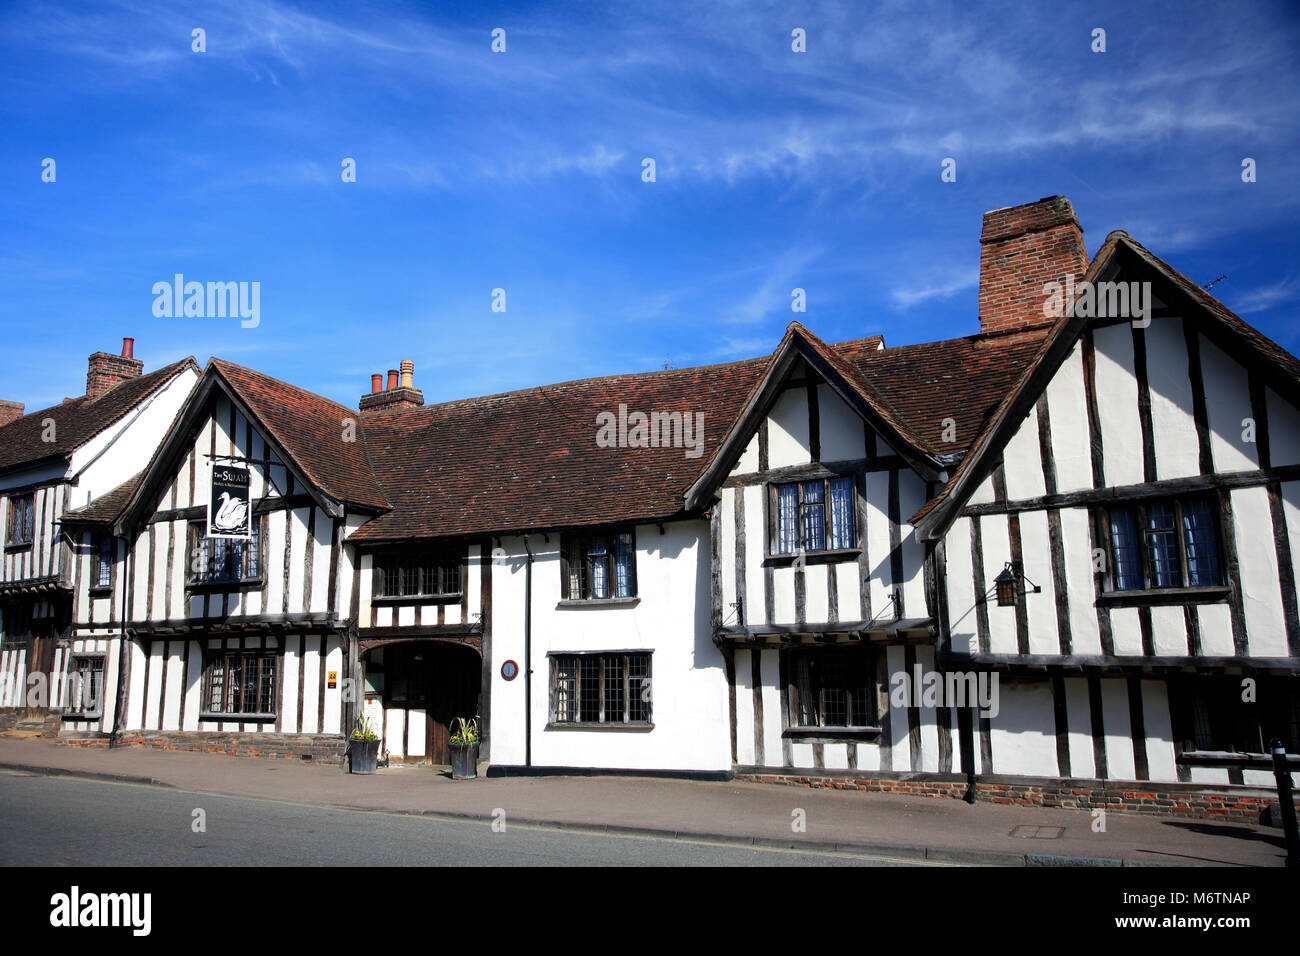 Exterior of the Swan Hotel, Lavenham village, Suffolk County, England, UK - Stock Image